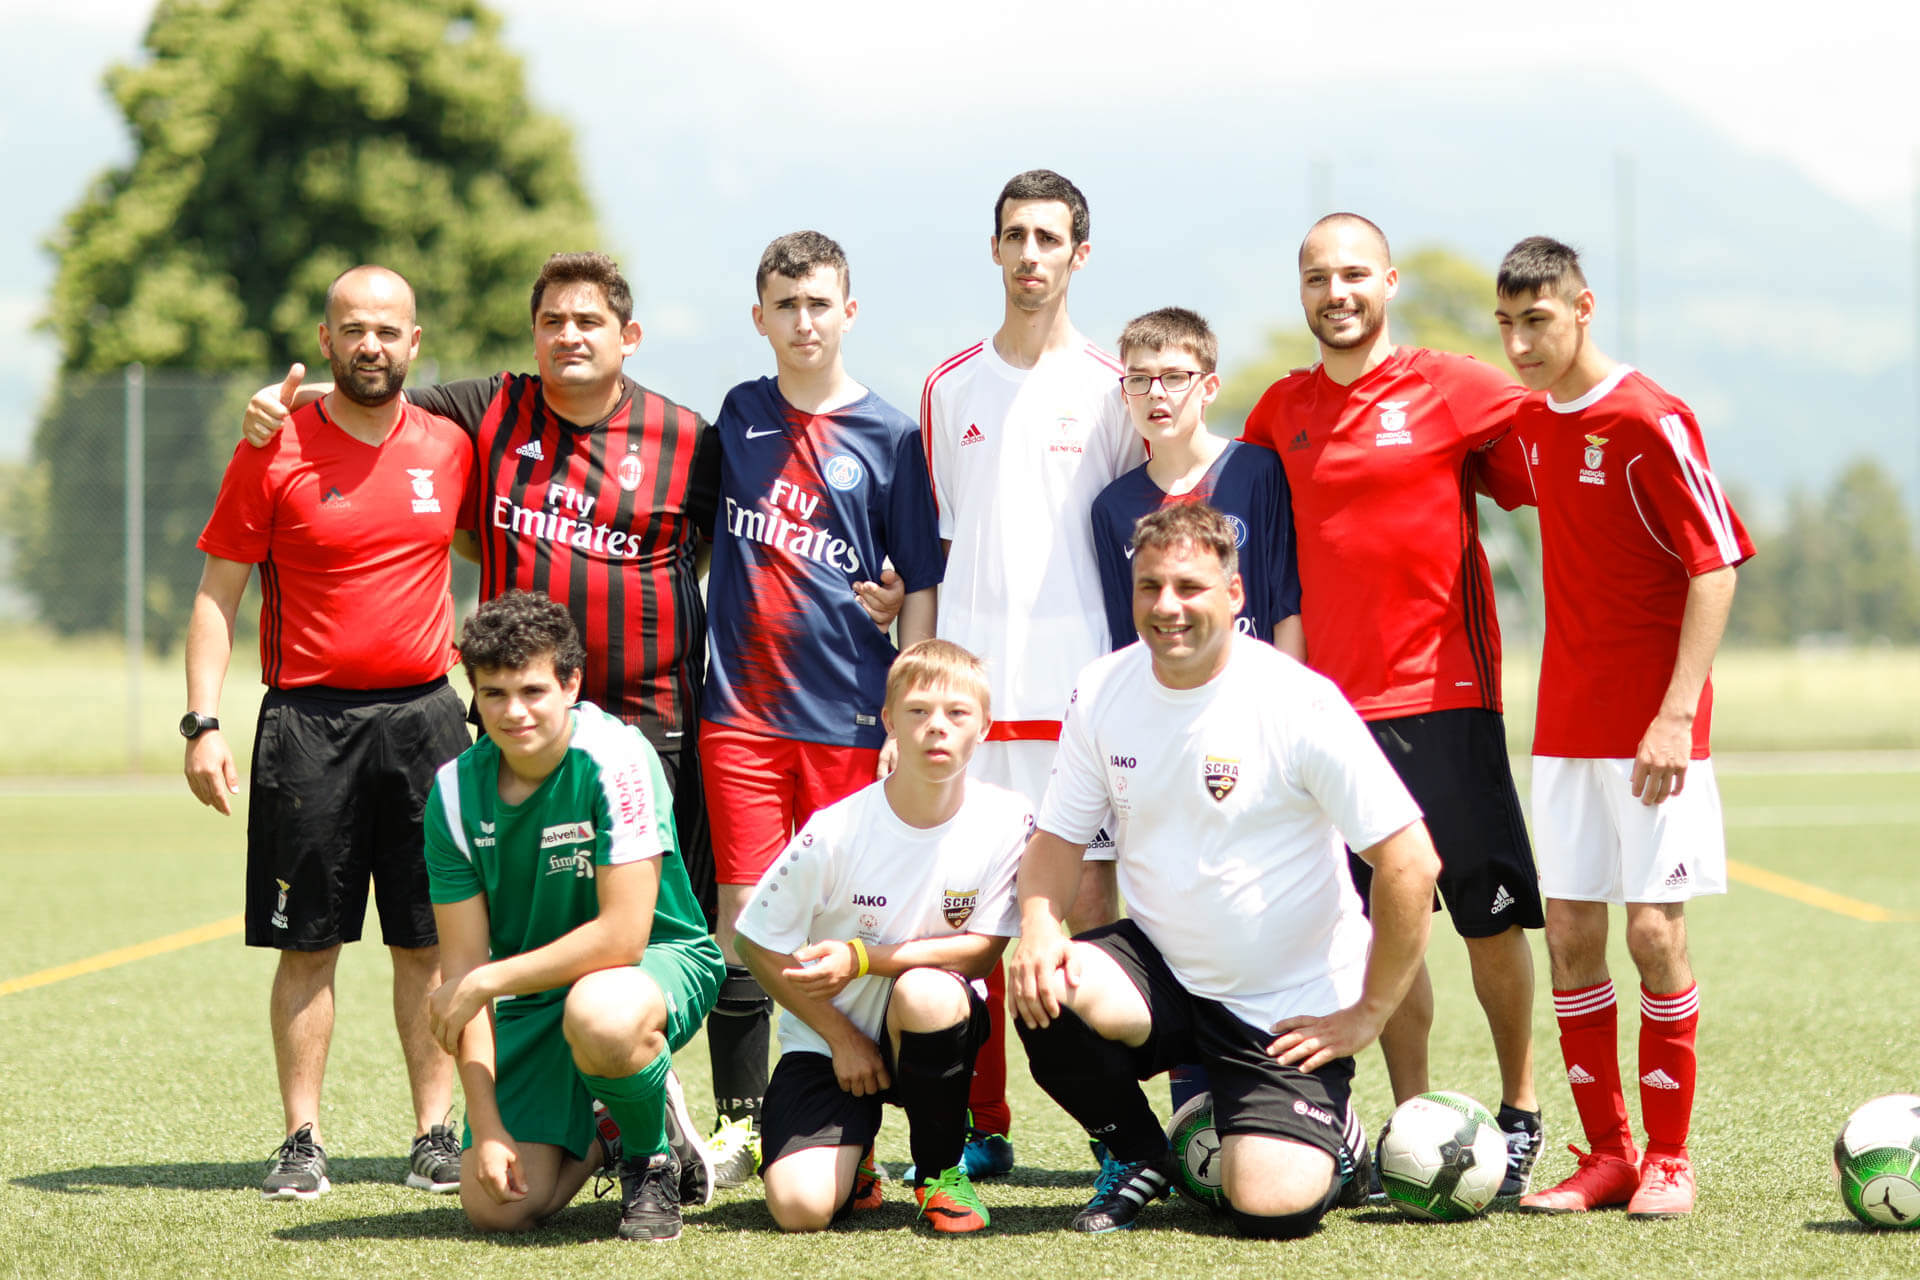 Football in More - Liechtenstein - team photo